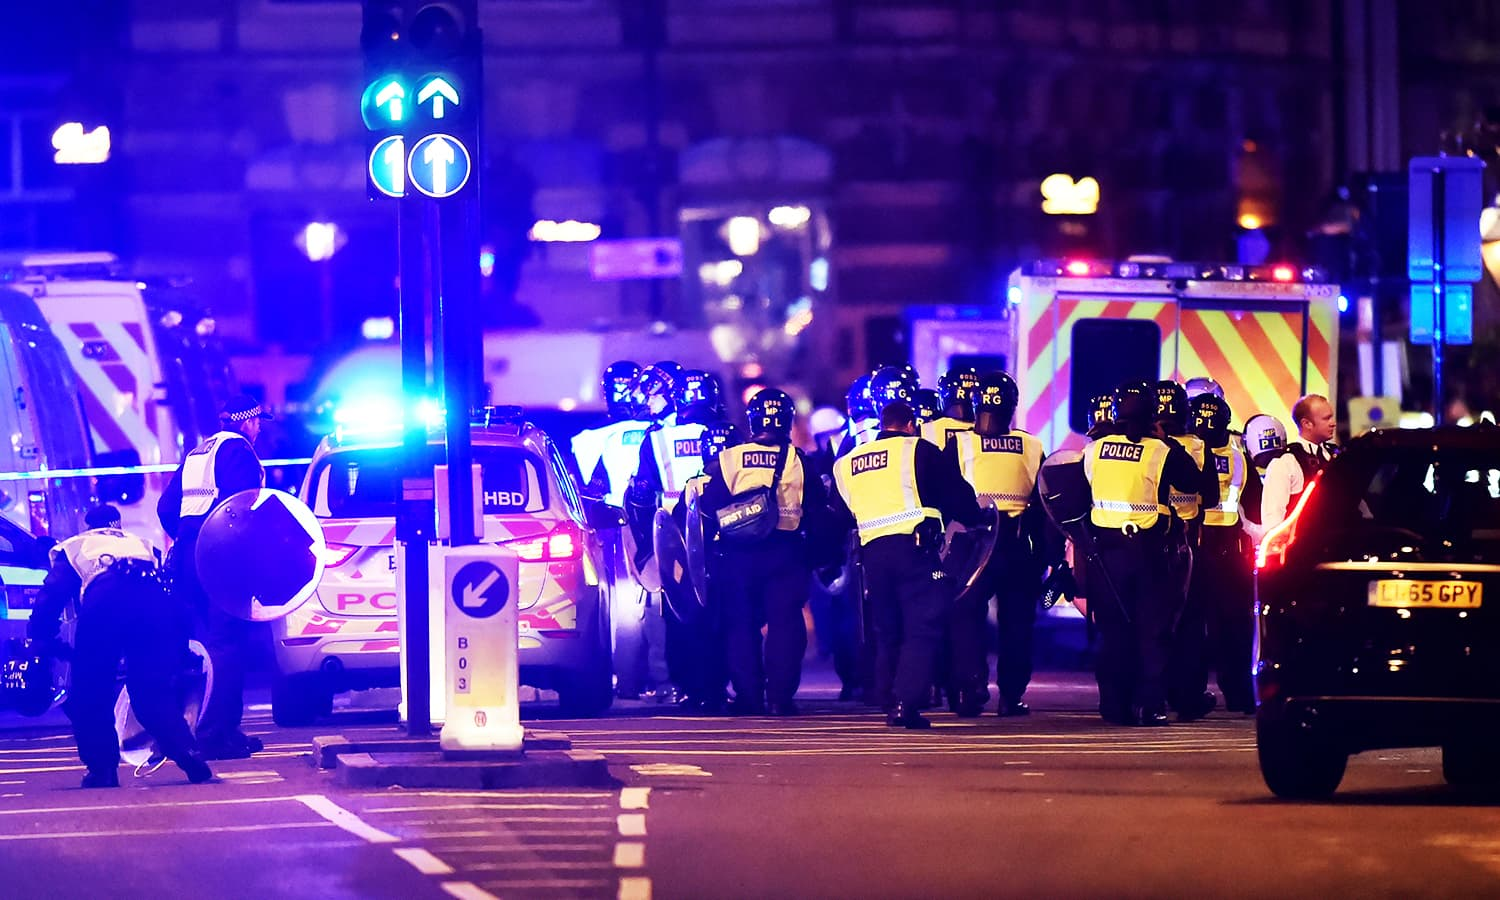 Police attend to an incident on London Bridge in London.─Reuters